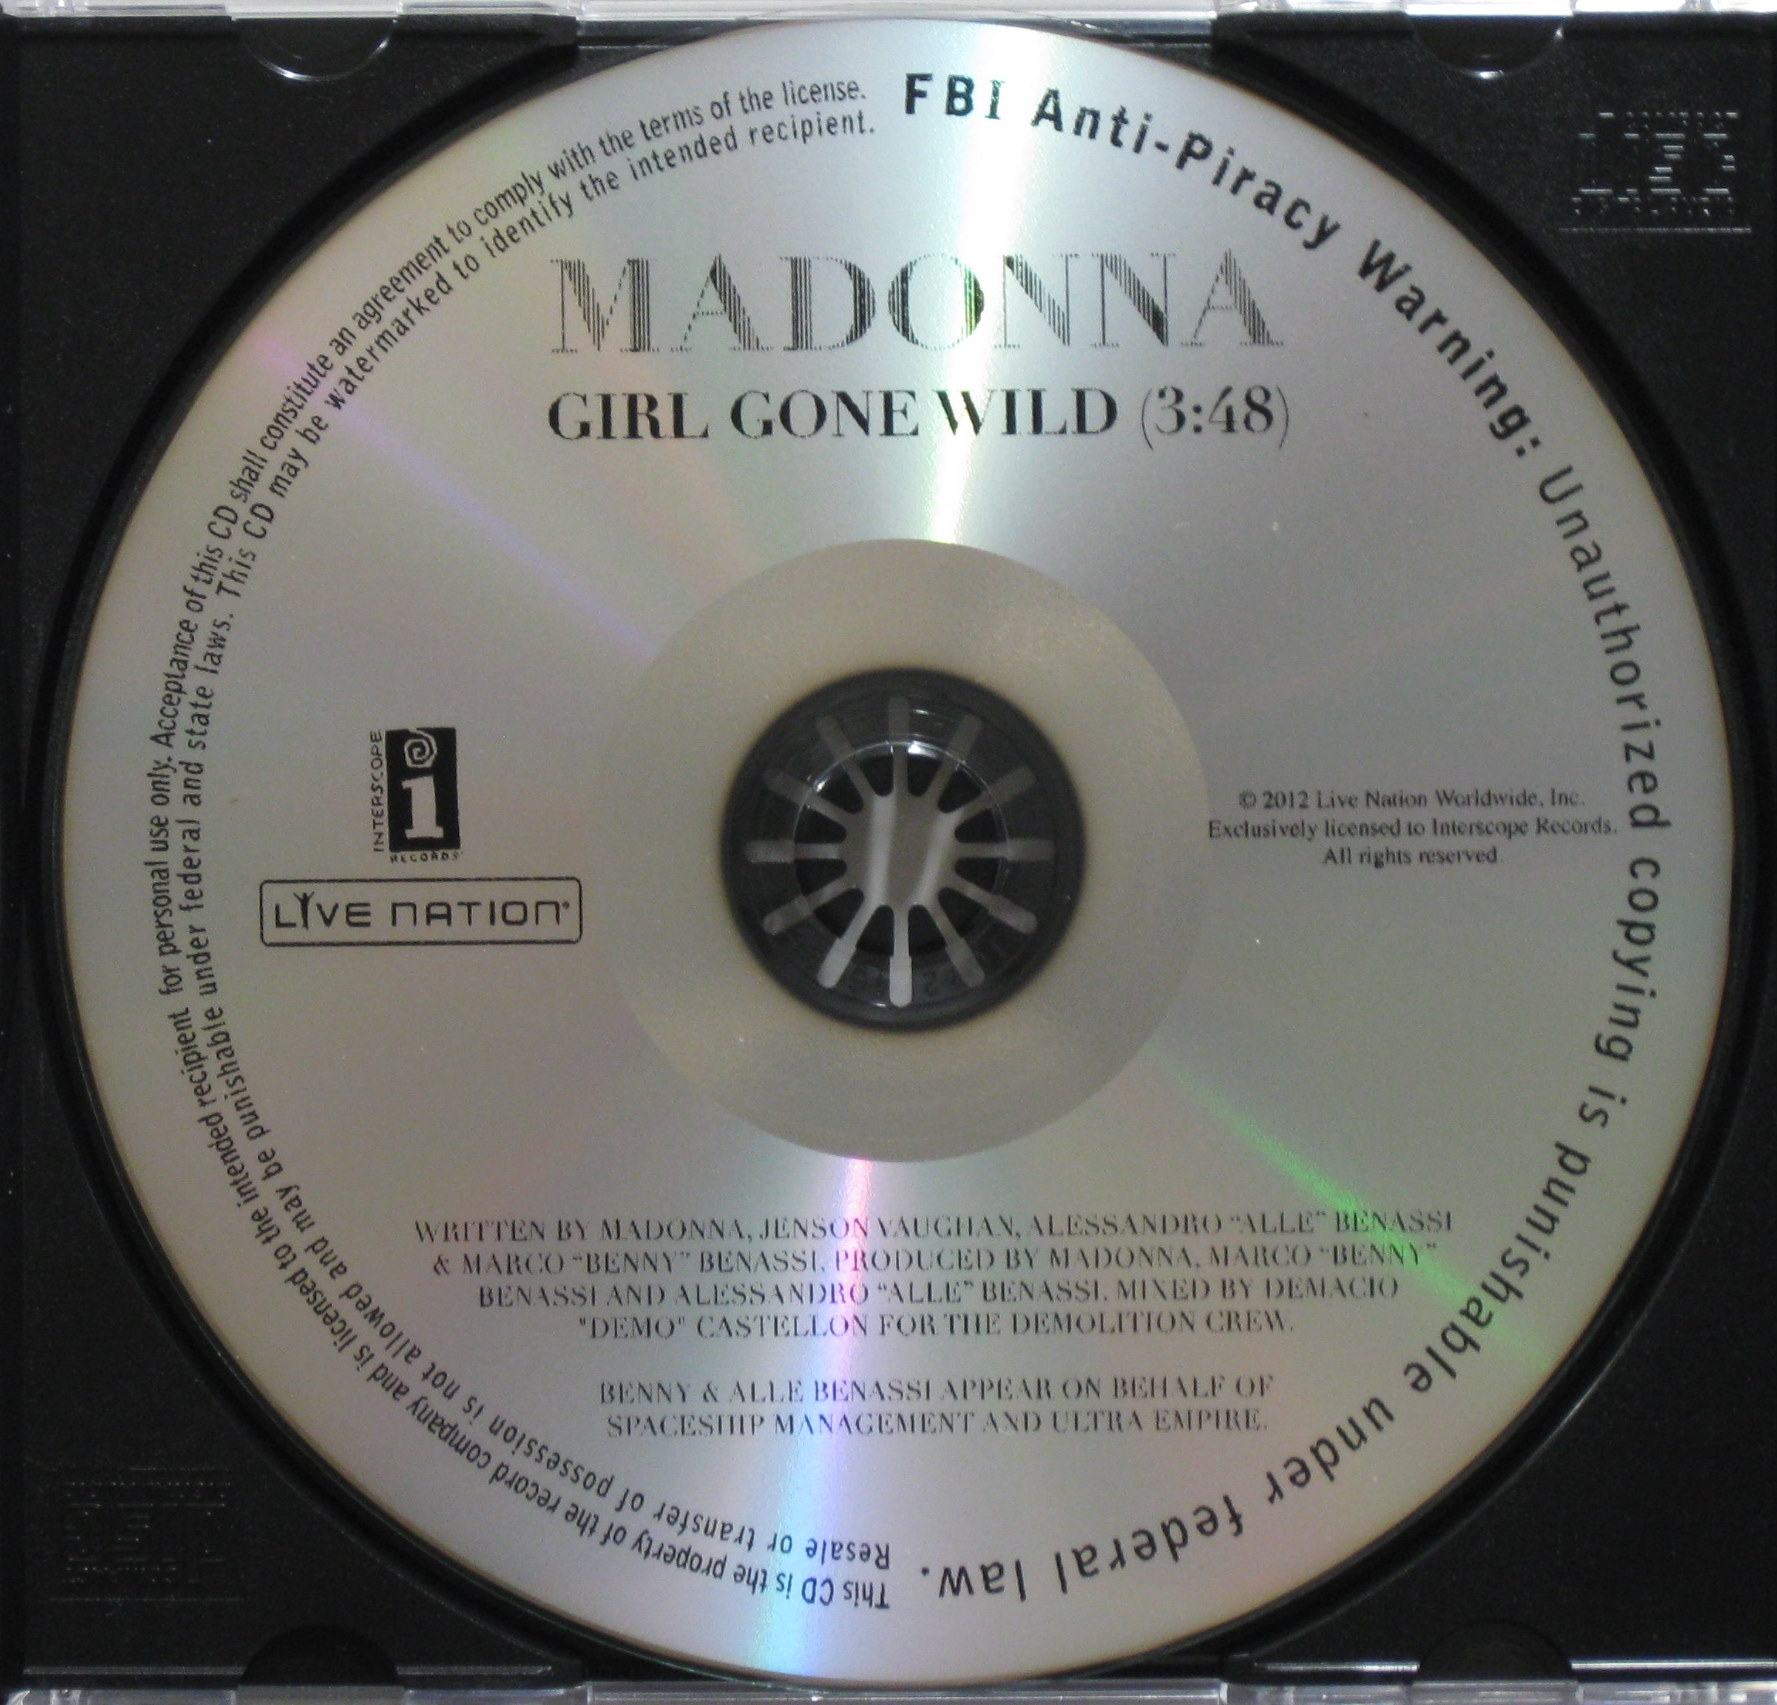 20120316-news-madonna-girl-gone-wild-us-promo-cd